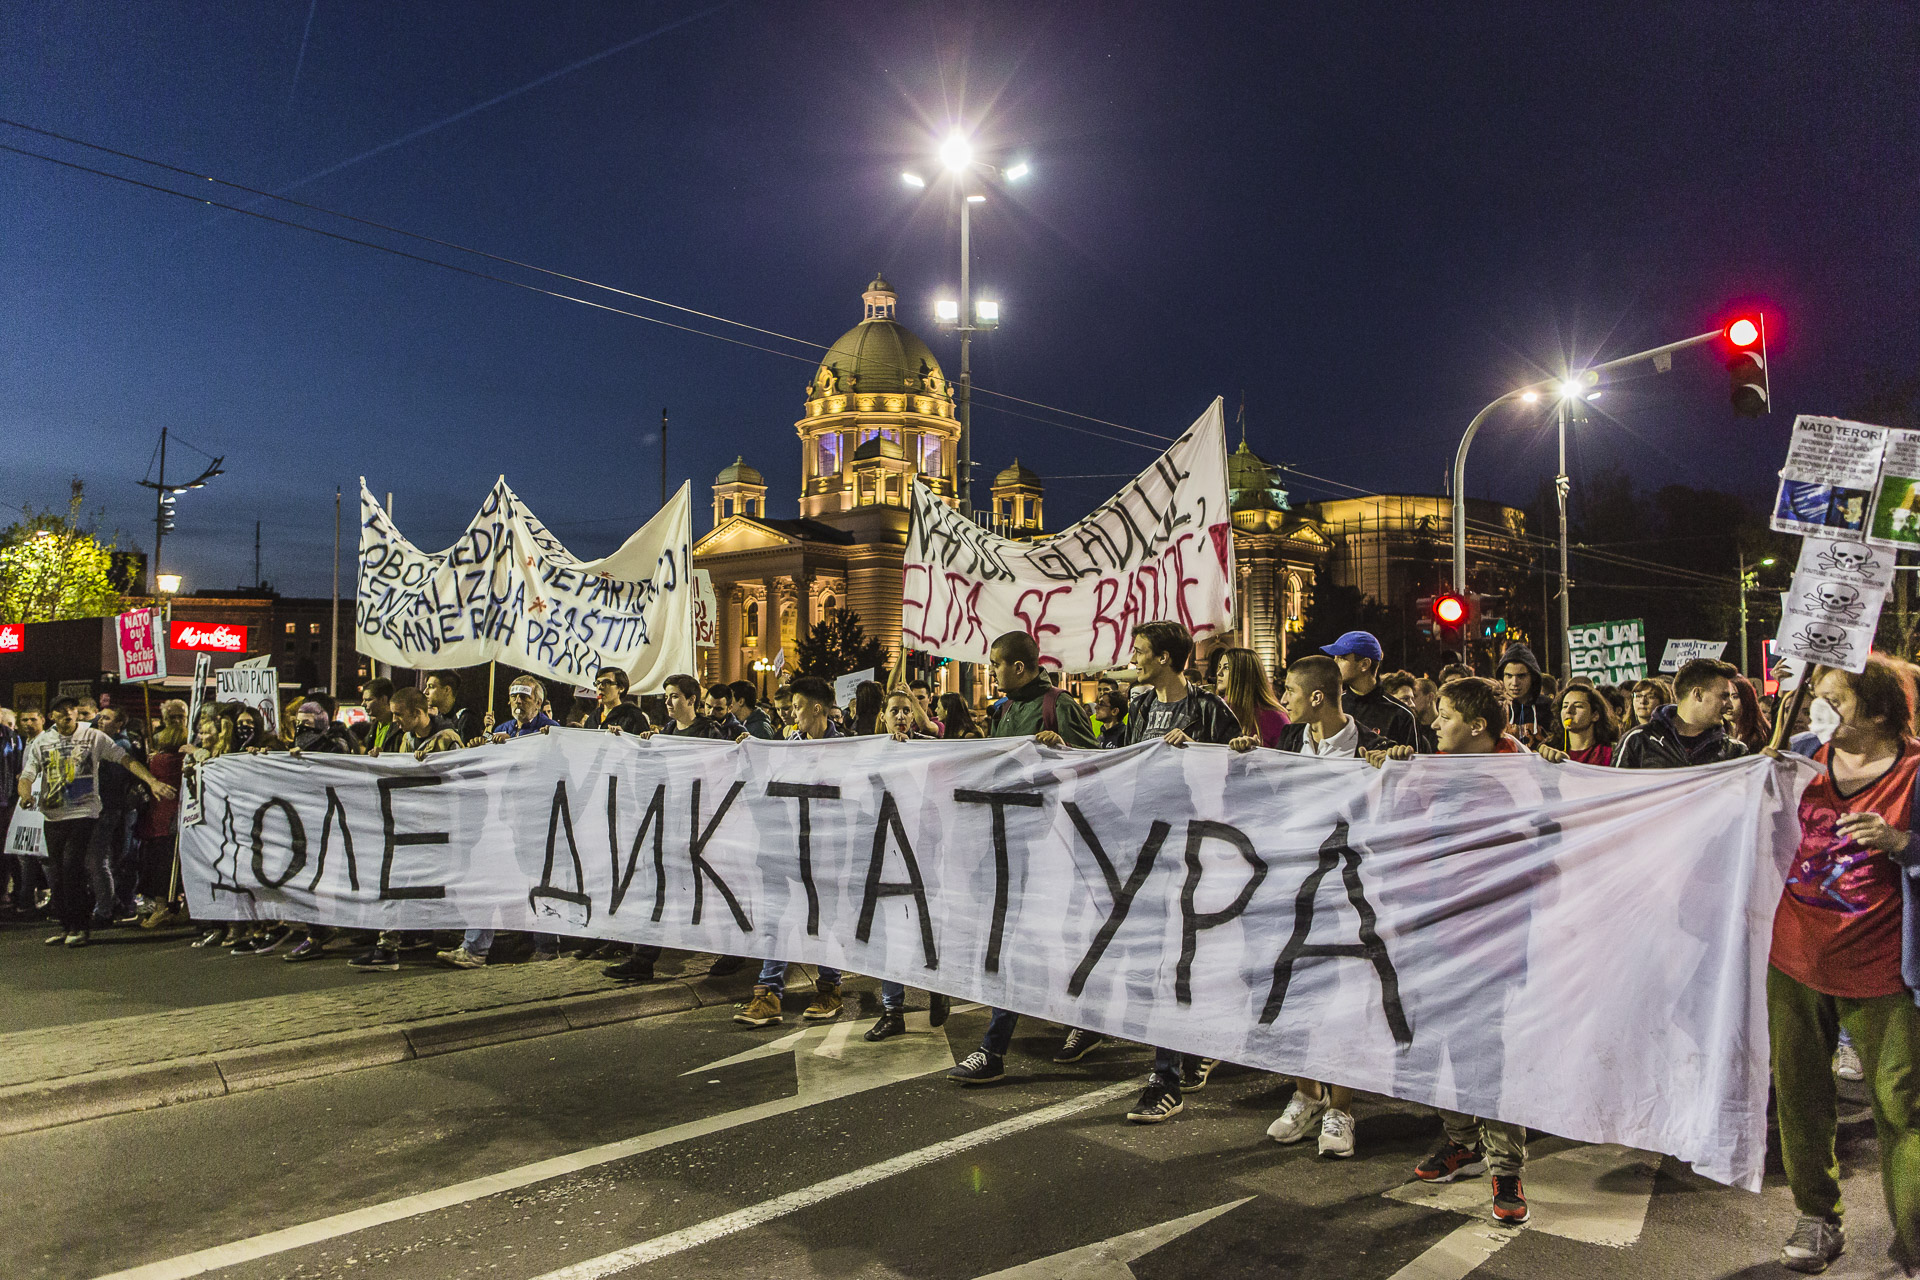 Protesters started to rallie the streets of Belgrade.The last time something similar happened was when demonstrations forced Milosevic to resign from presidency not long after the Nato Bombings.